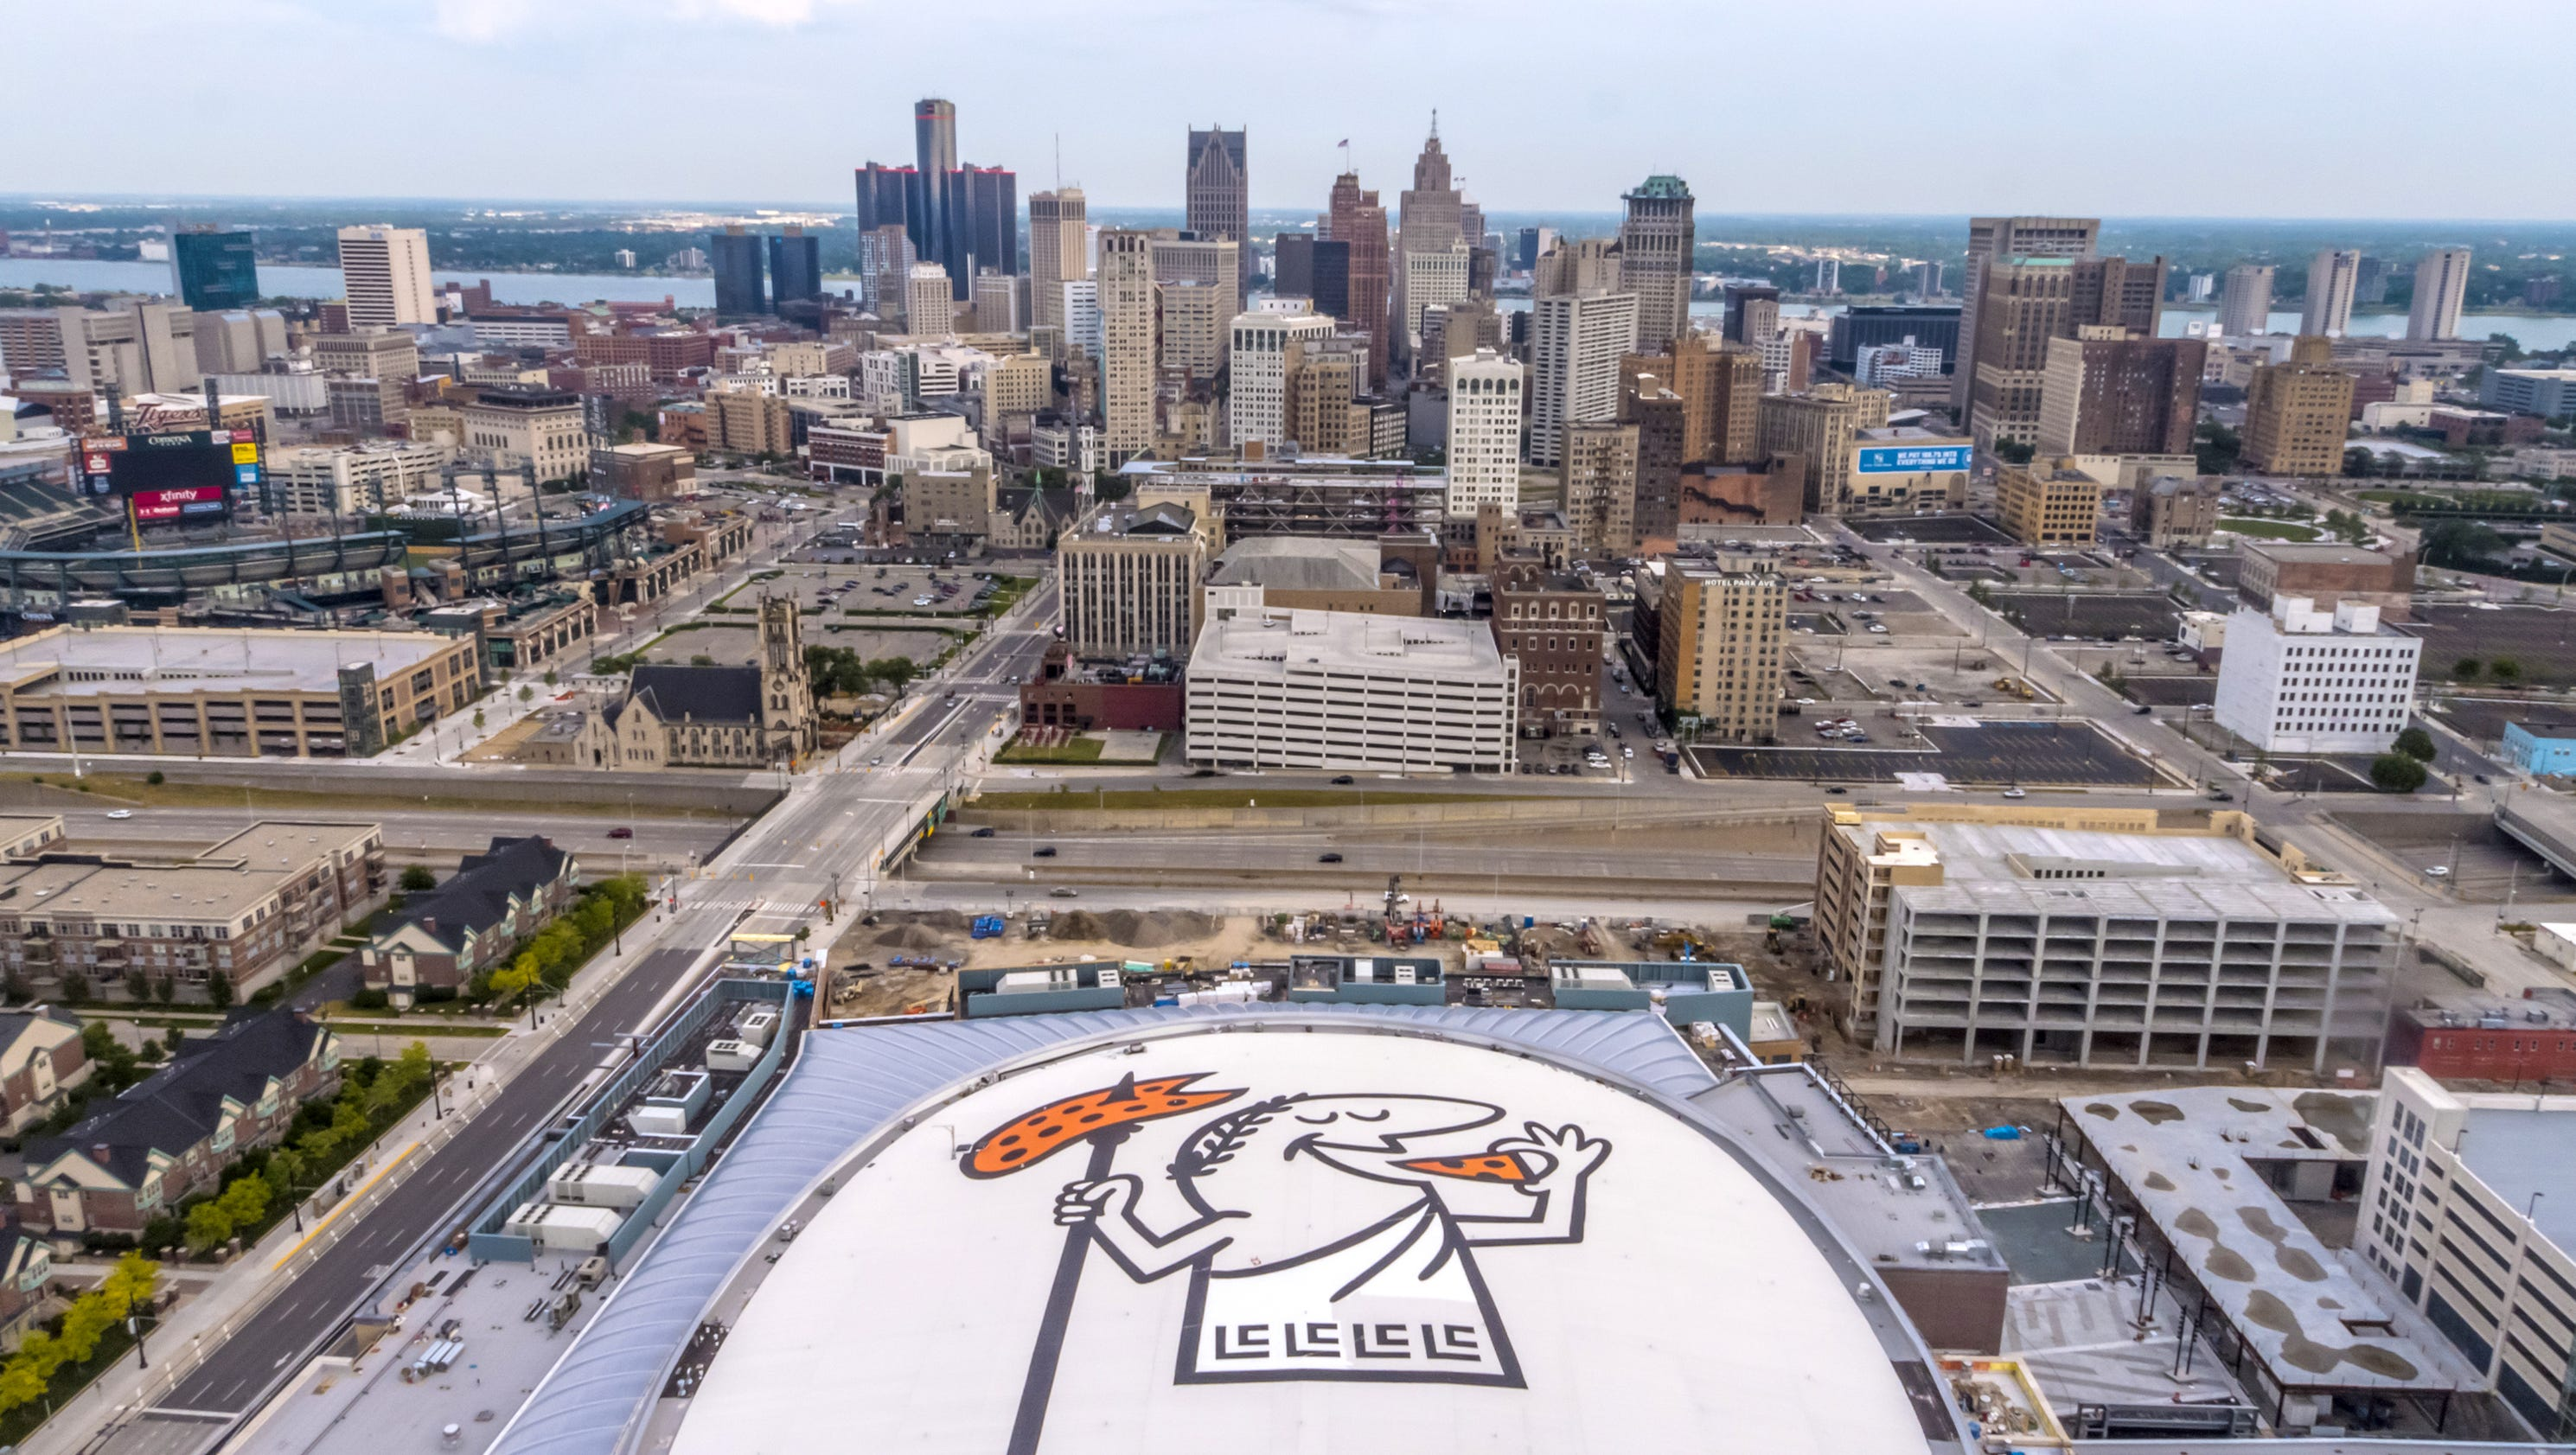 Detroit Red Wings Arena >> Little Caesars guy on new Detroit arena roof? Wings fans seeing red